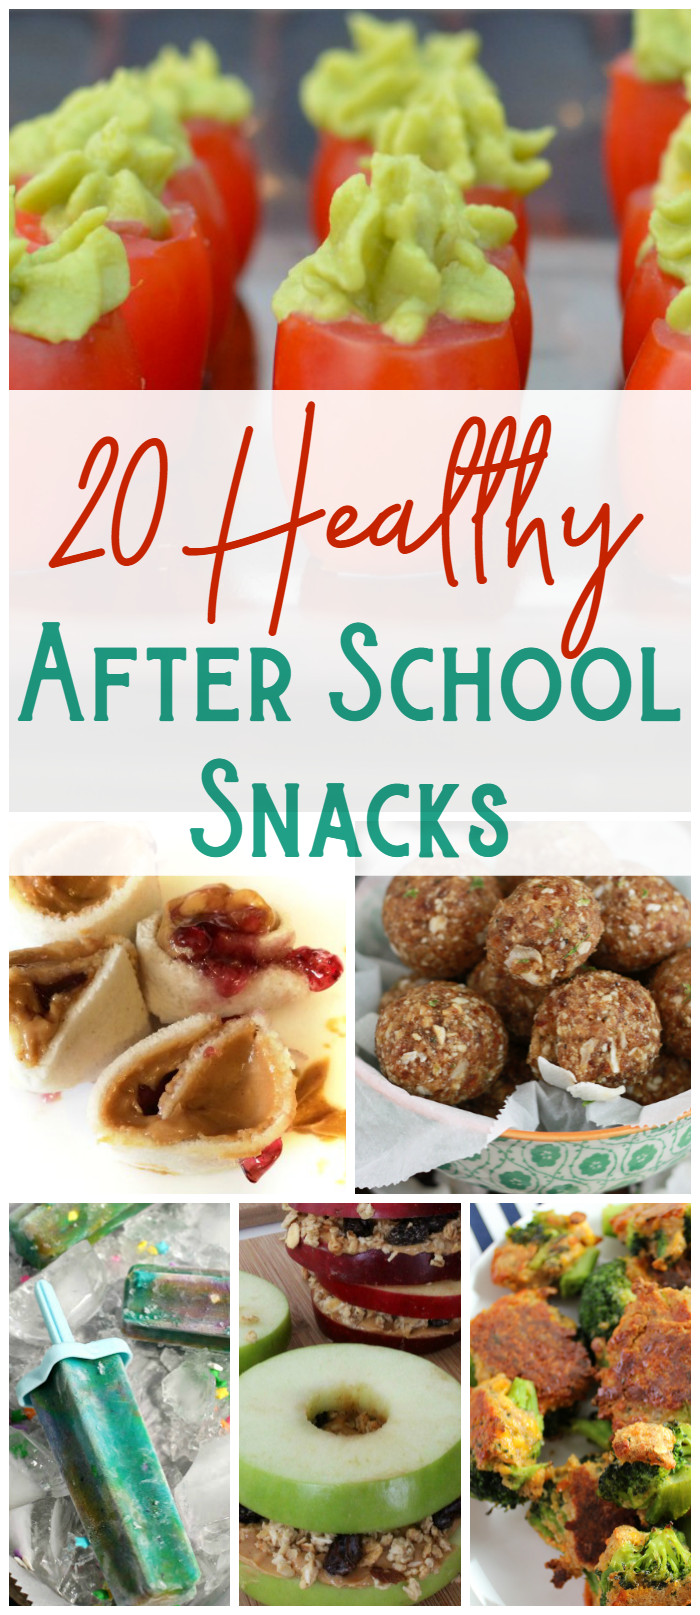 Healthy After School Snacks  20 After School Snacks The Shirley Journey